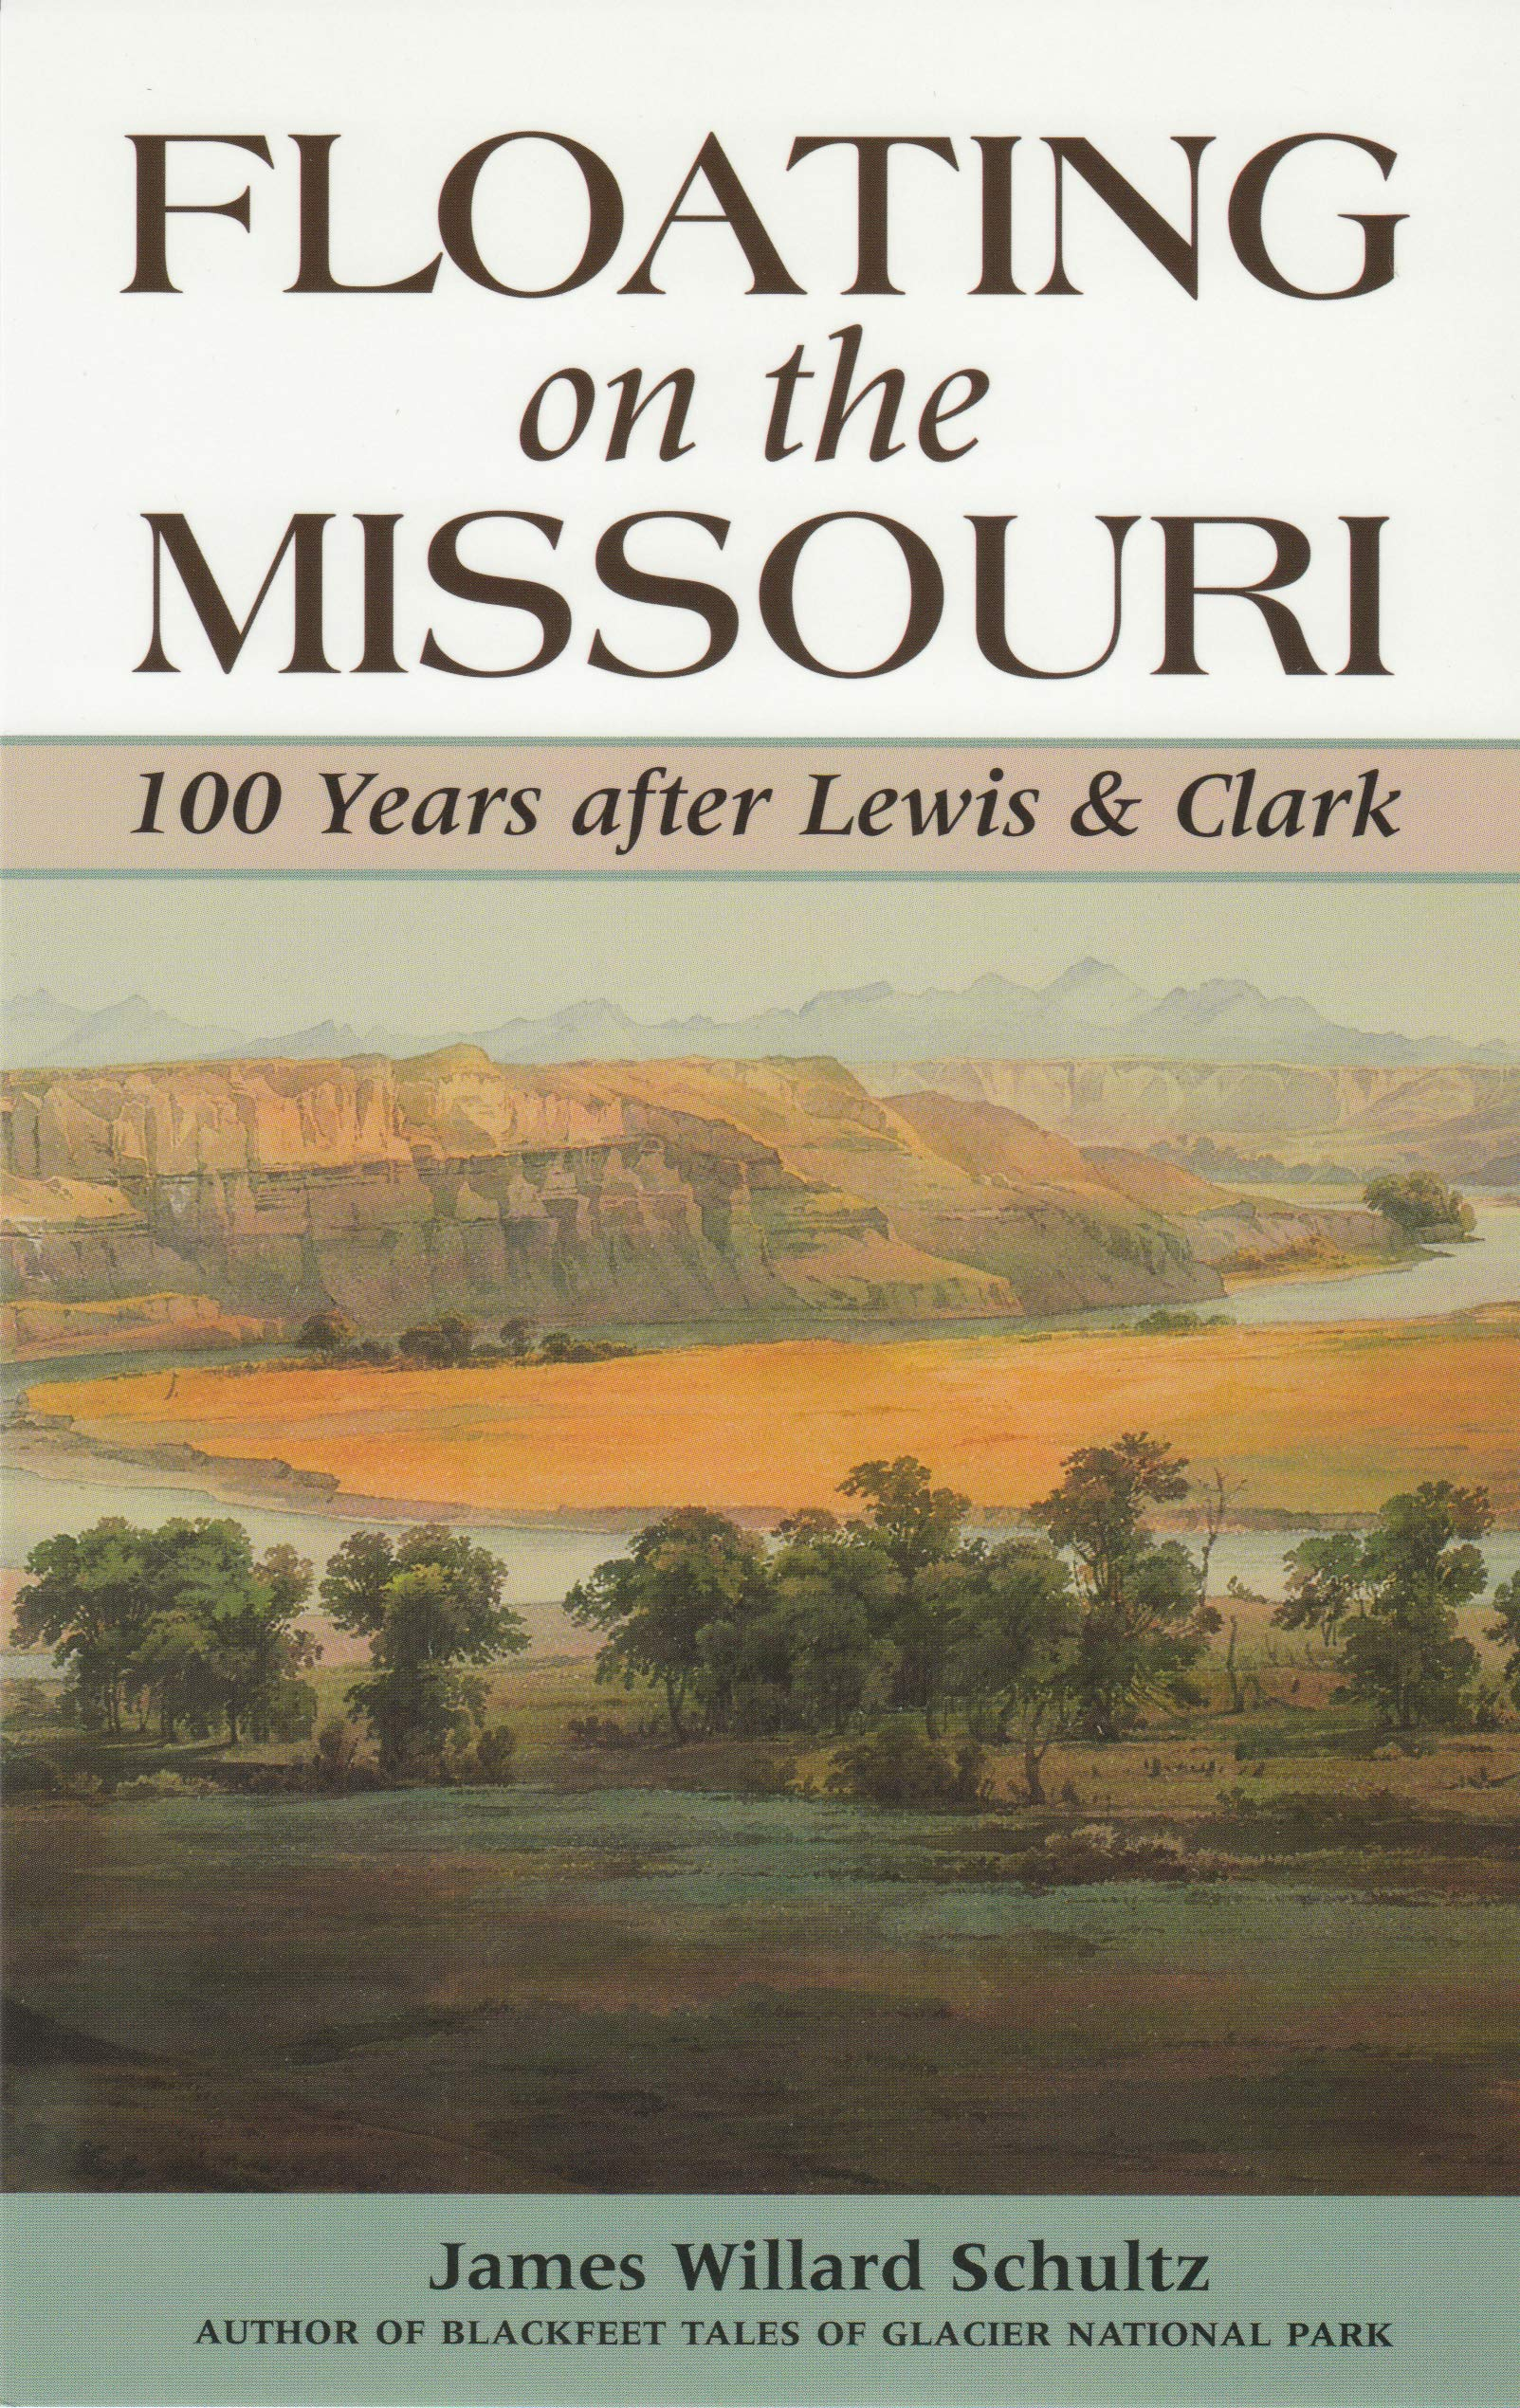 Floating on the Missouri: 100 Years After Lewis & Clark: James Willard  Schultz: 9781931832151: Amazon.com: Books